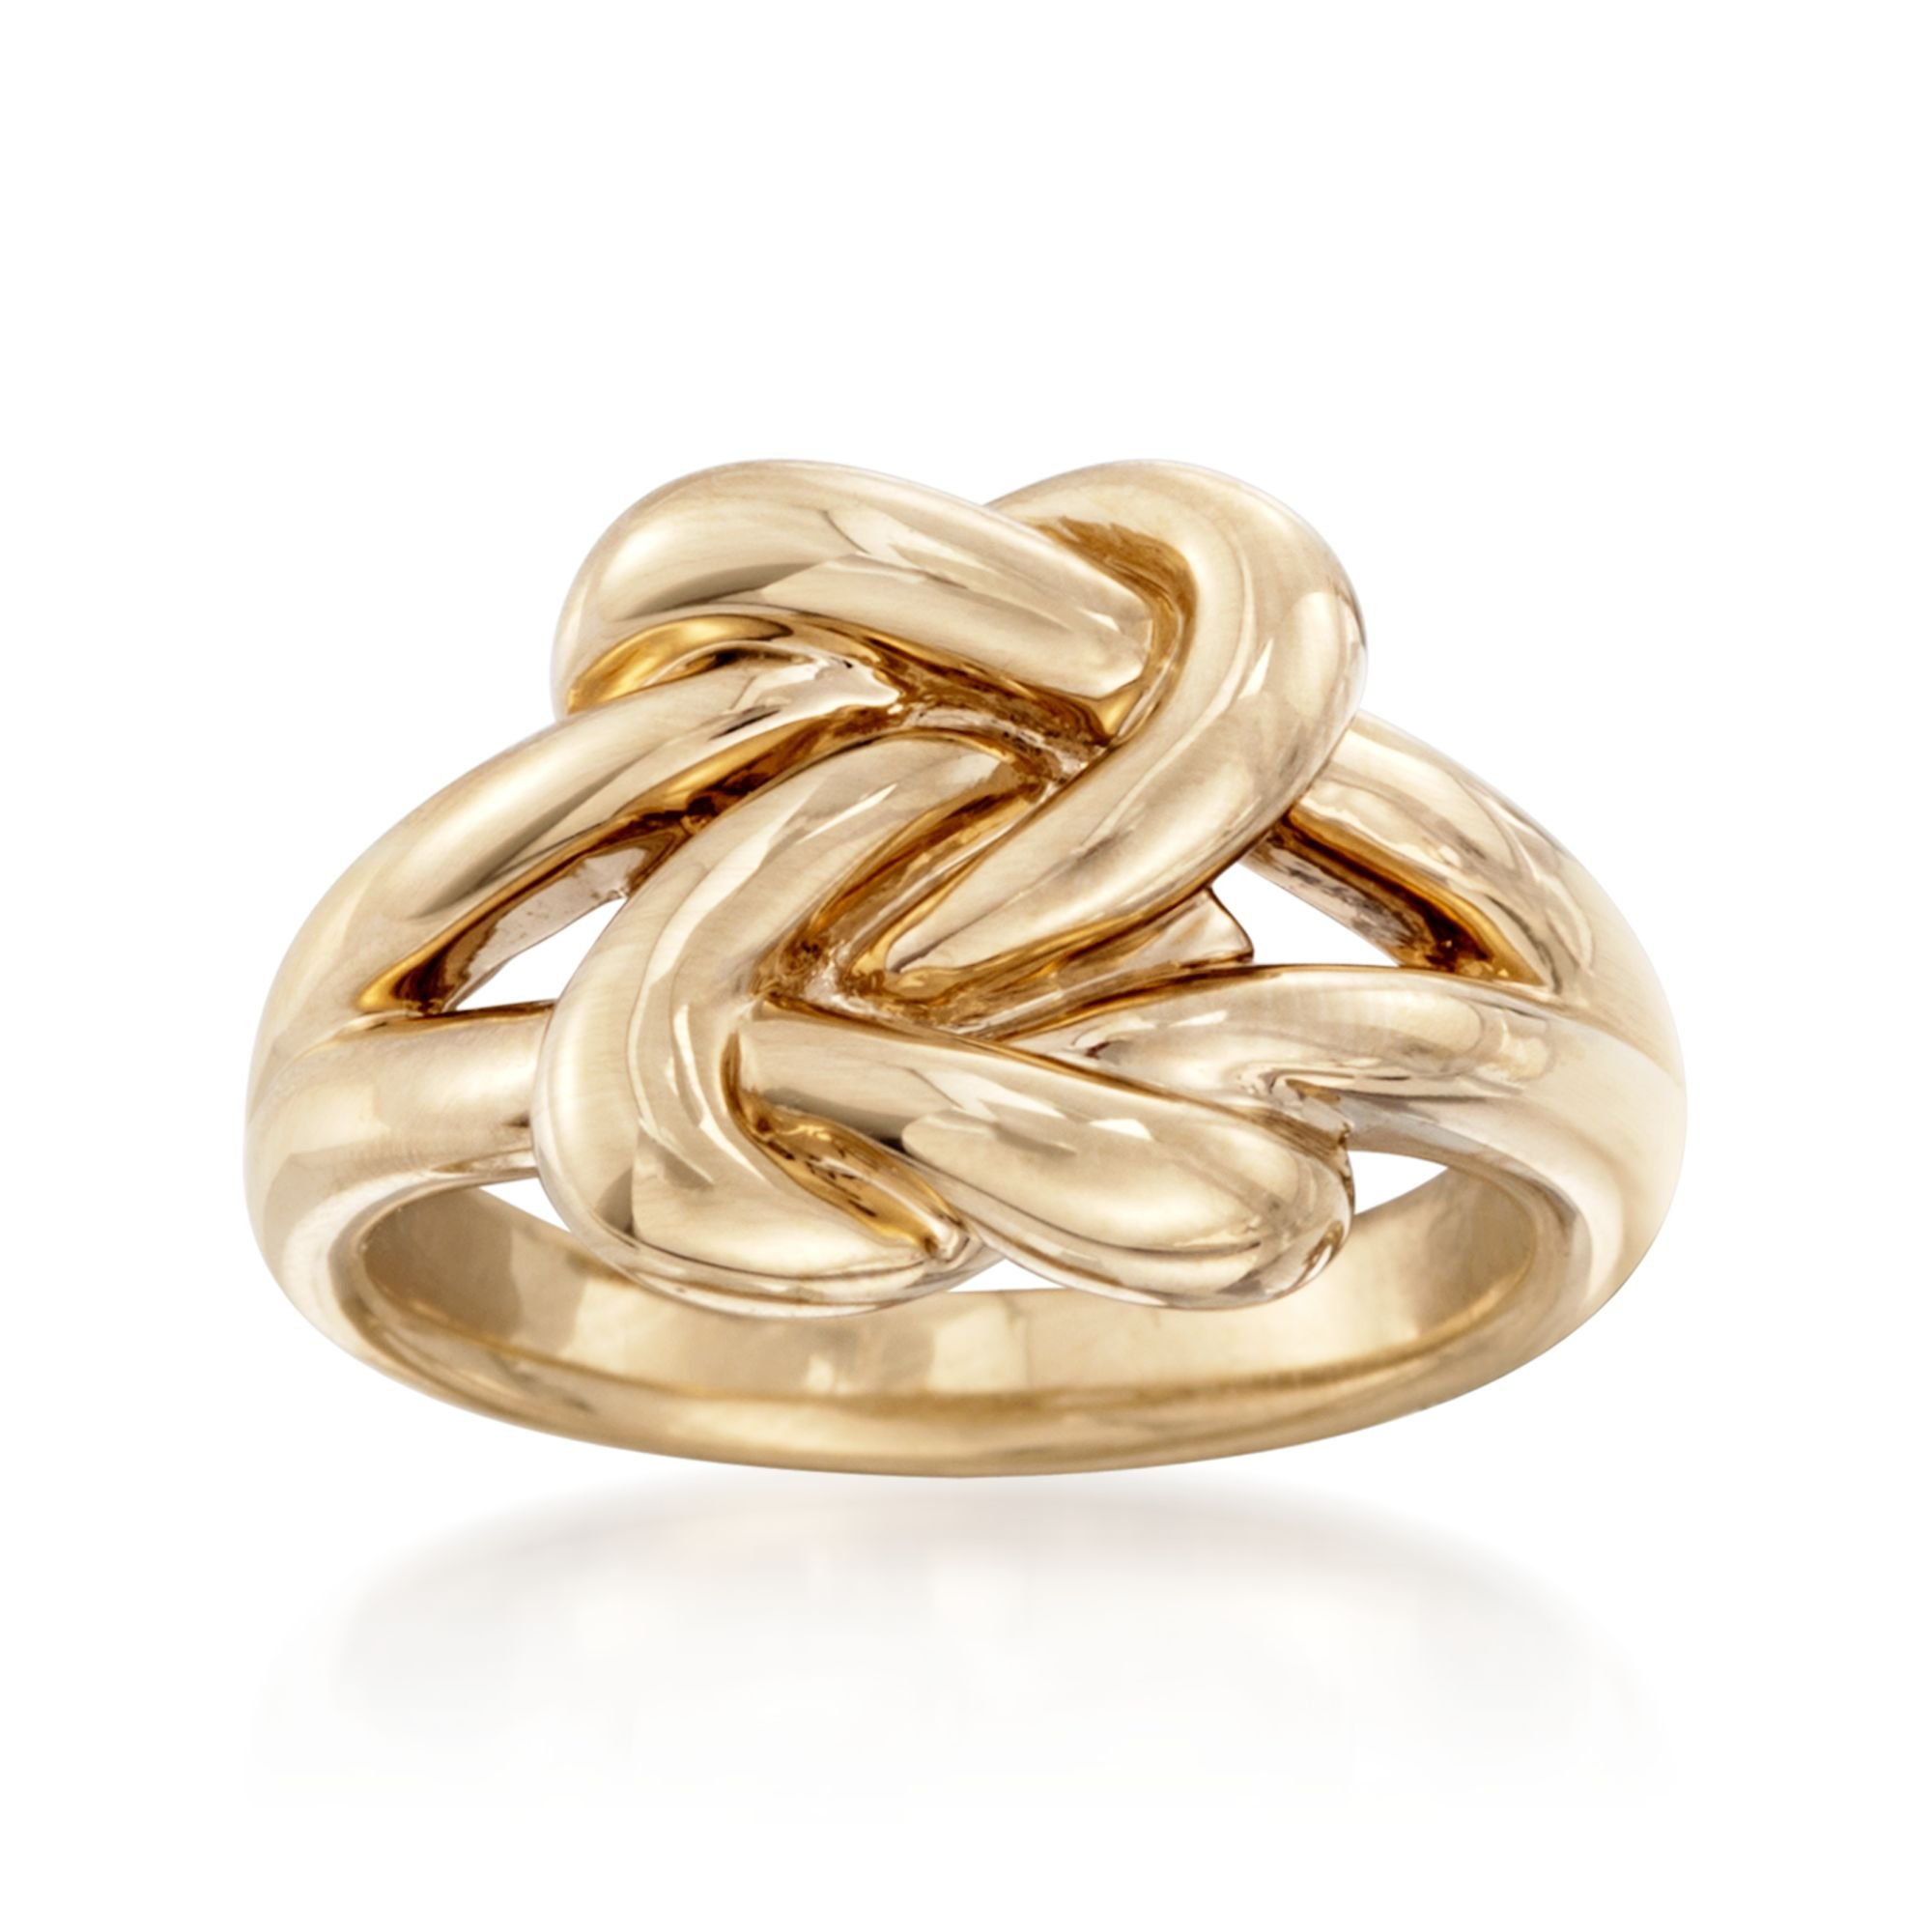 Ross-Simons 14kt Yellow Gold Double Love Knot Ring by Ross-Simons